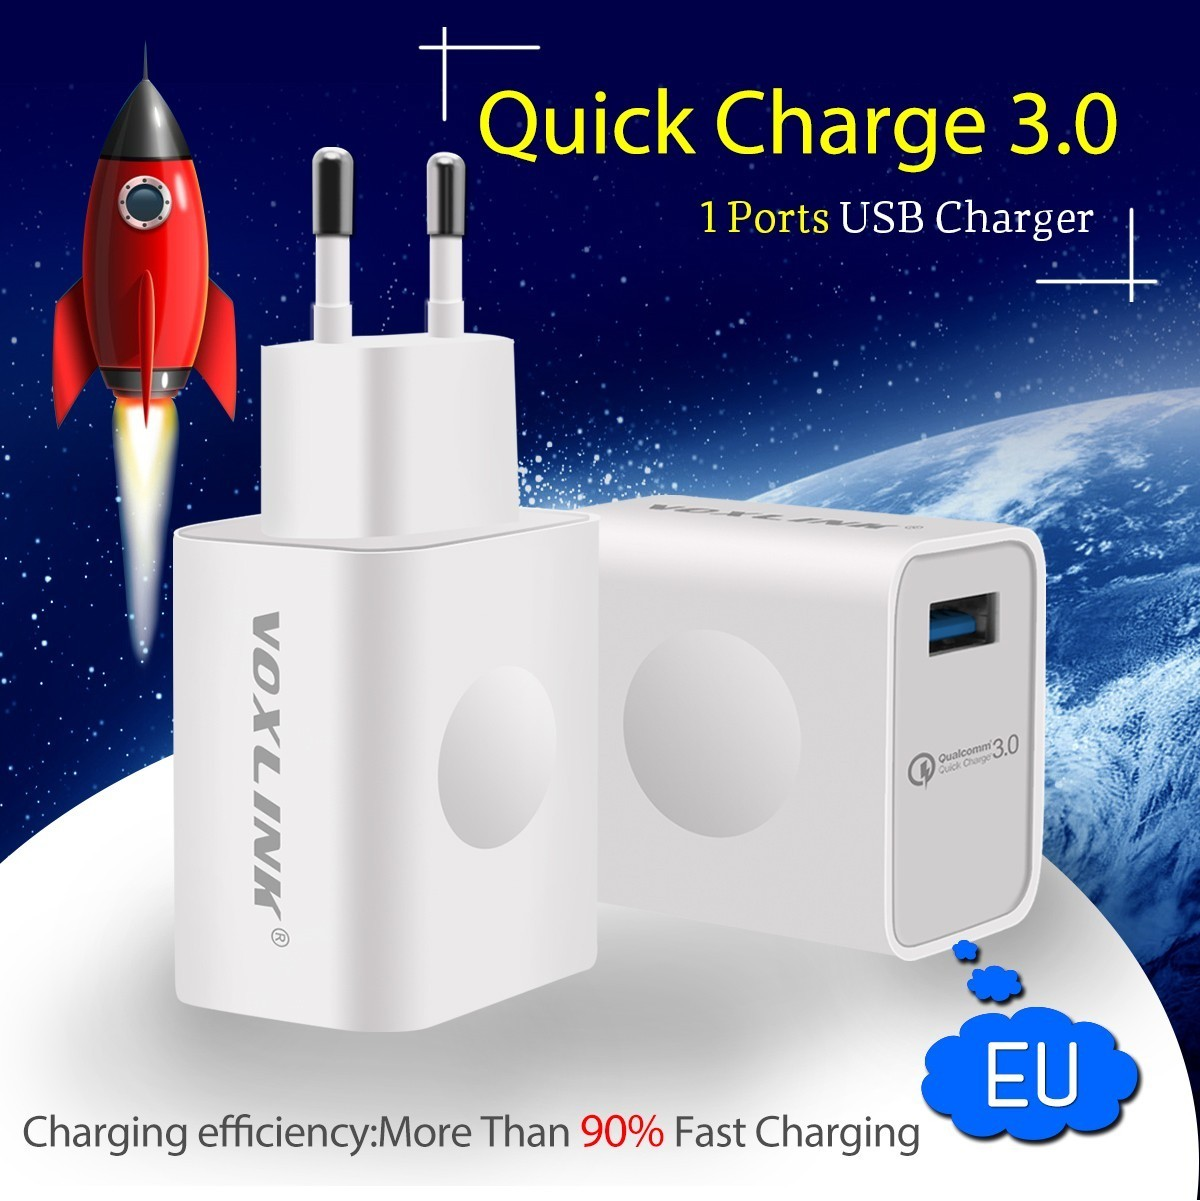 [Qualcomm Certified] VOXLINK Quick Charge 3.0 Full 18W USB Turbo Wall Fast Travel Charger For Samsung HTC LG A9 Xiao Mi